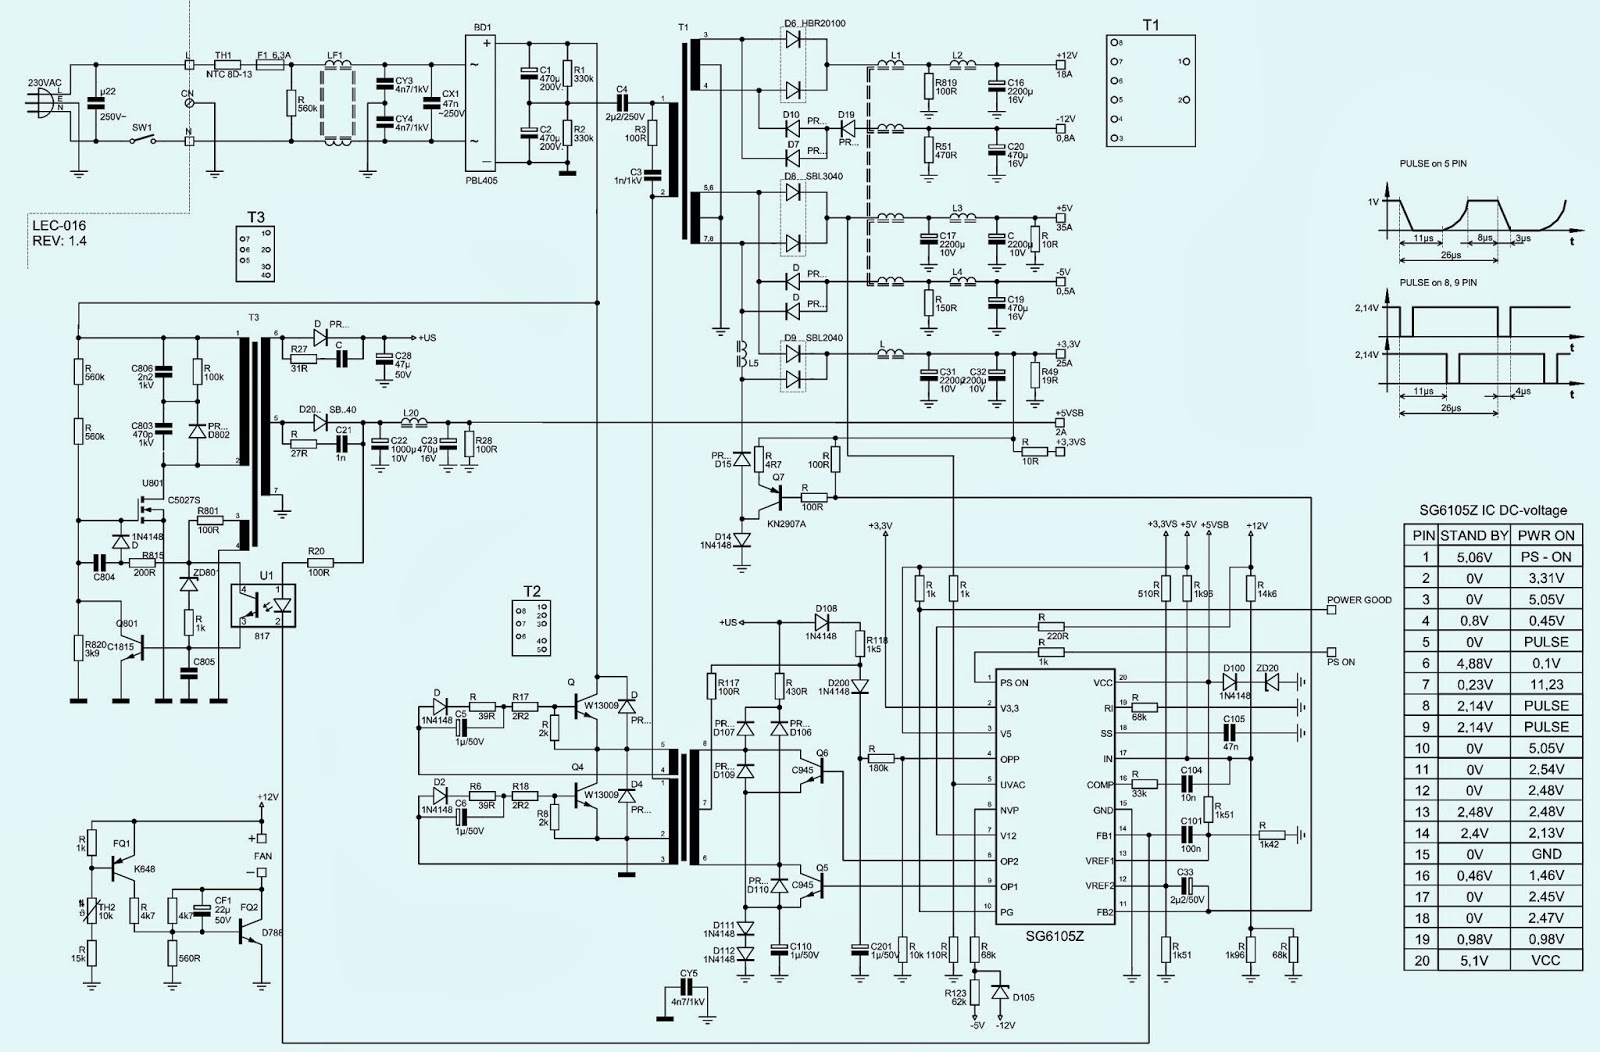 atx power supply circuit diagram wiring diagram sys computer power supply 350 watts schematic diagram [ 1600 x 1052 Pixel ]